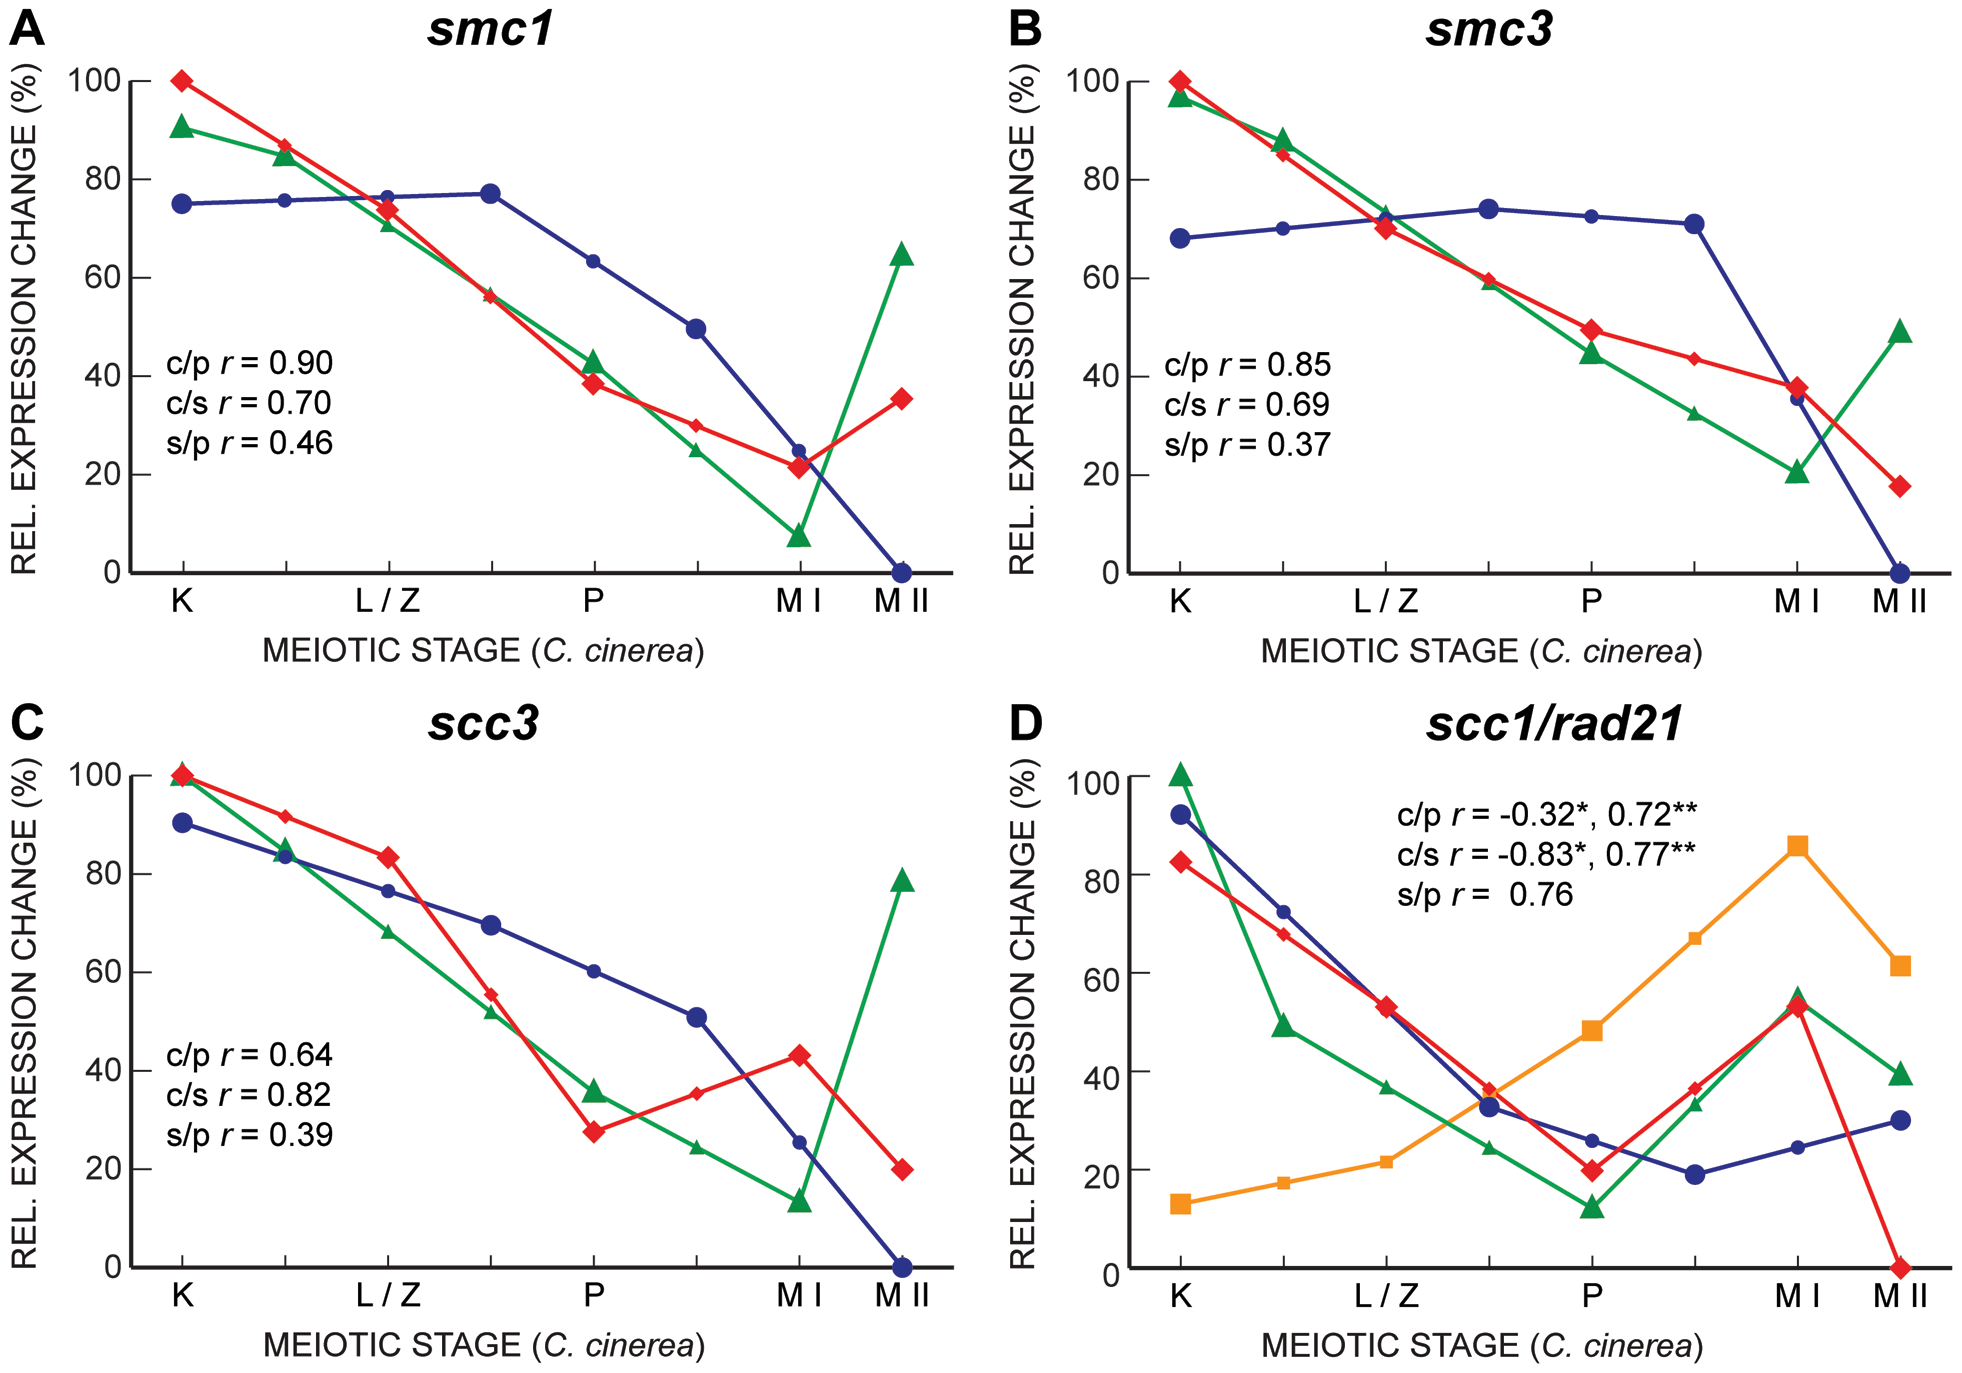 Gene expression profiles of cohesin subunits are well correlated between <i>C. cinerea</i> and <i>S. cerevisiae</i>, and between <i>C. cinerea</i> and <i>S. pombe</i>.